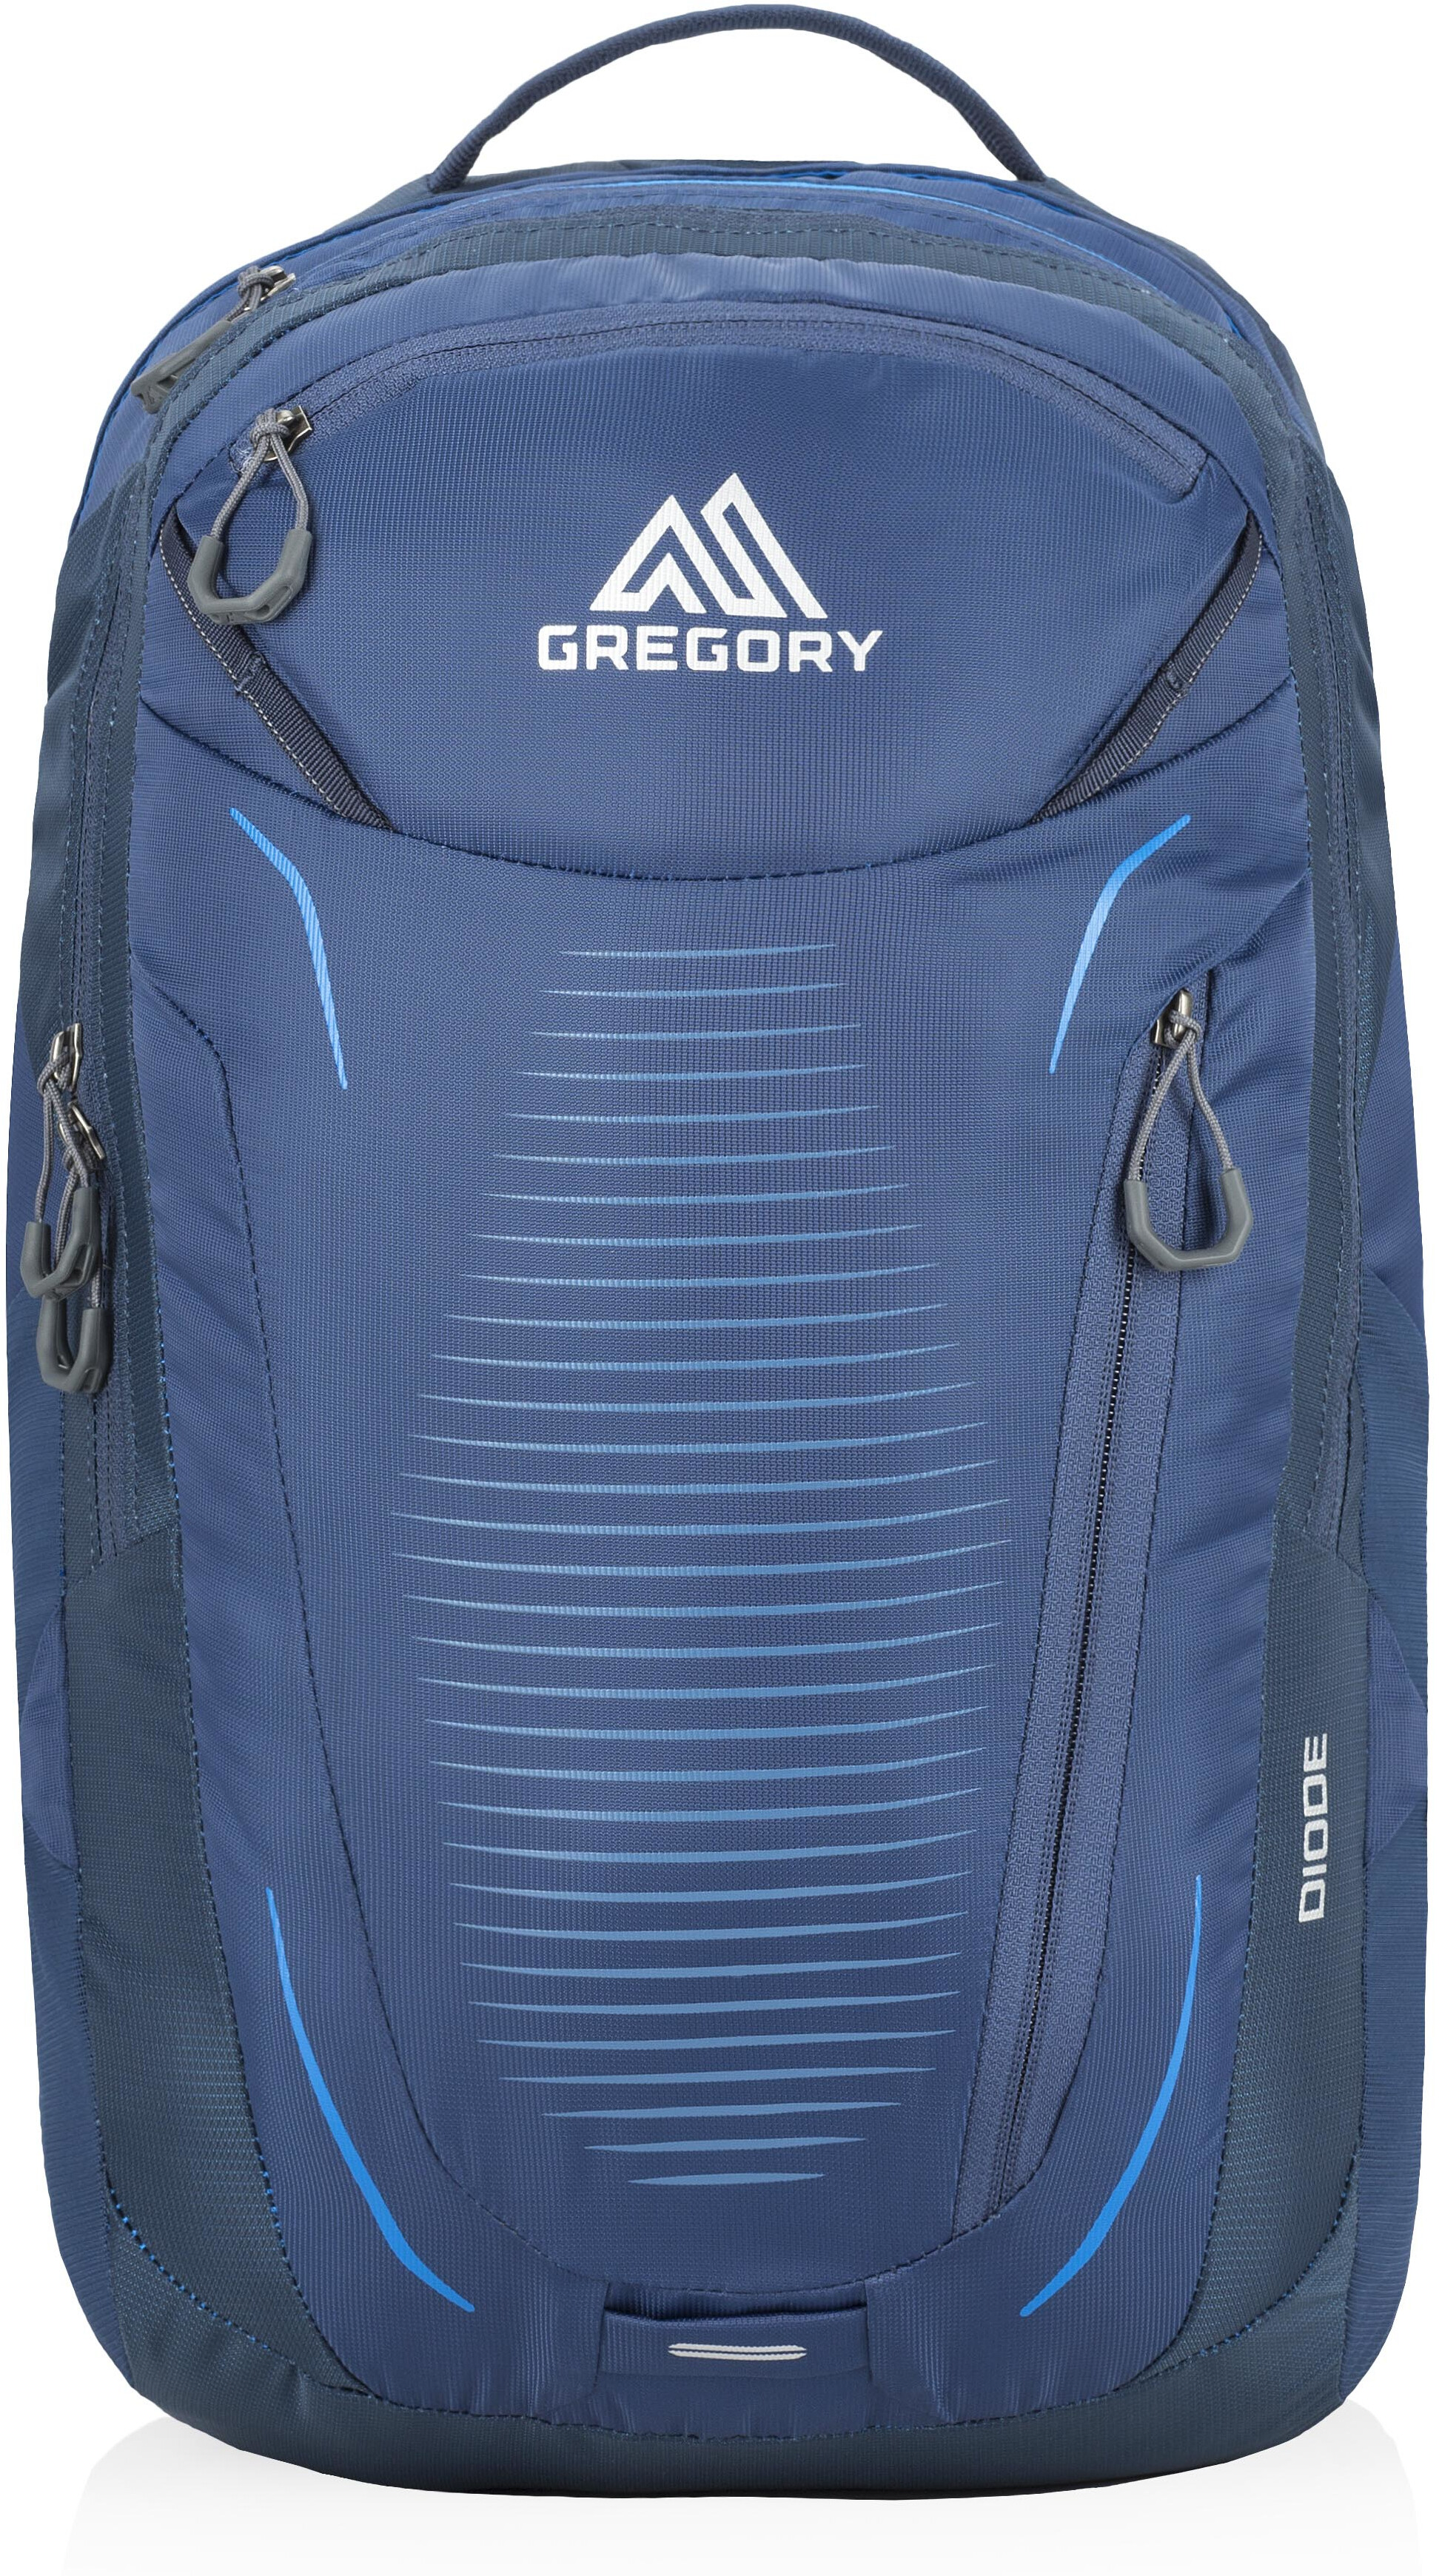 Gregory Diode 34 Backpack Men Xeno Navy Campz At